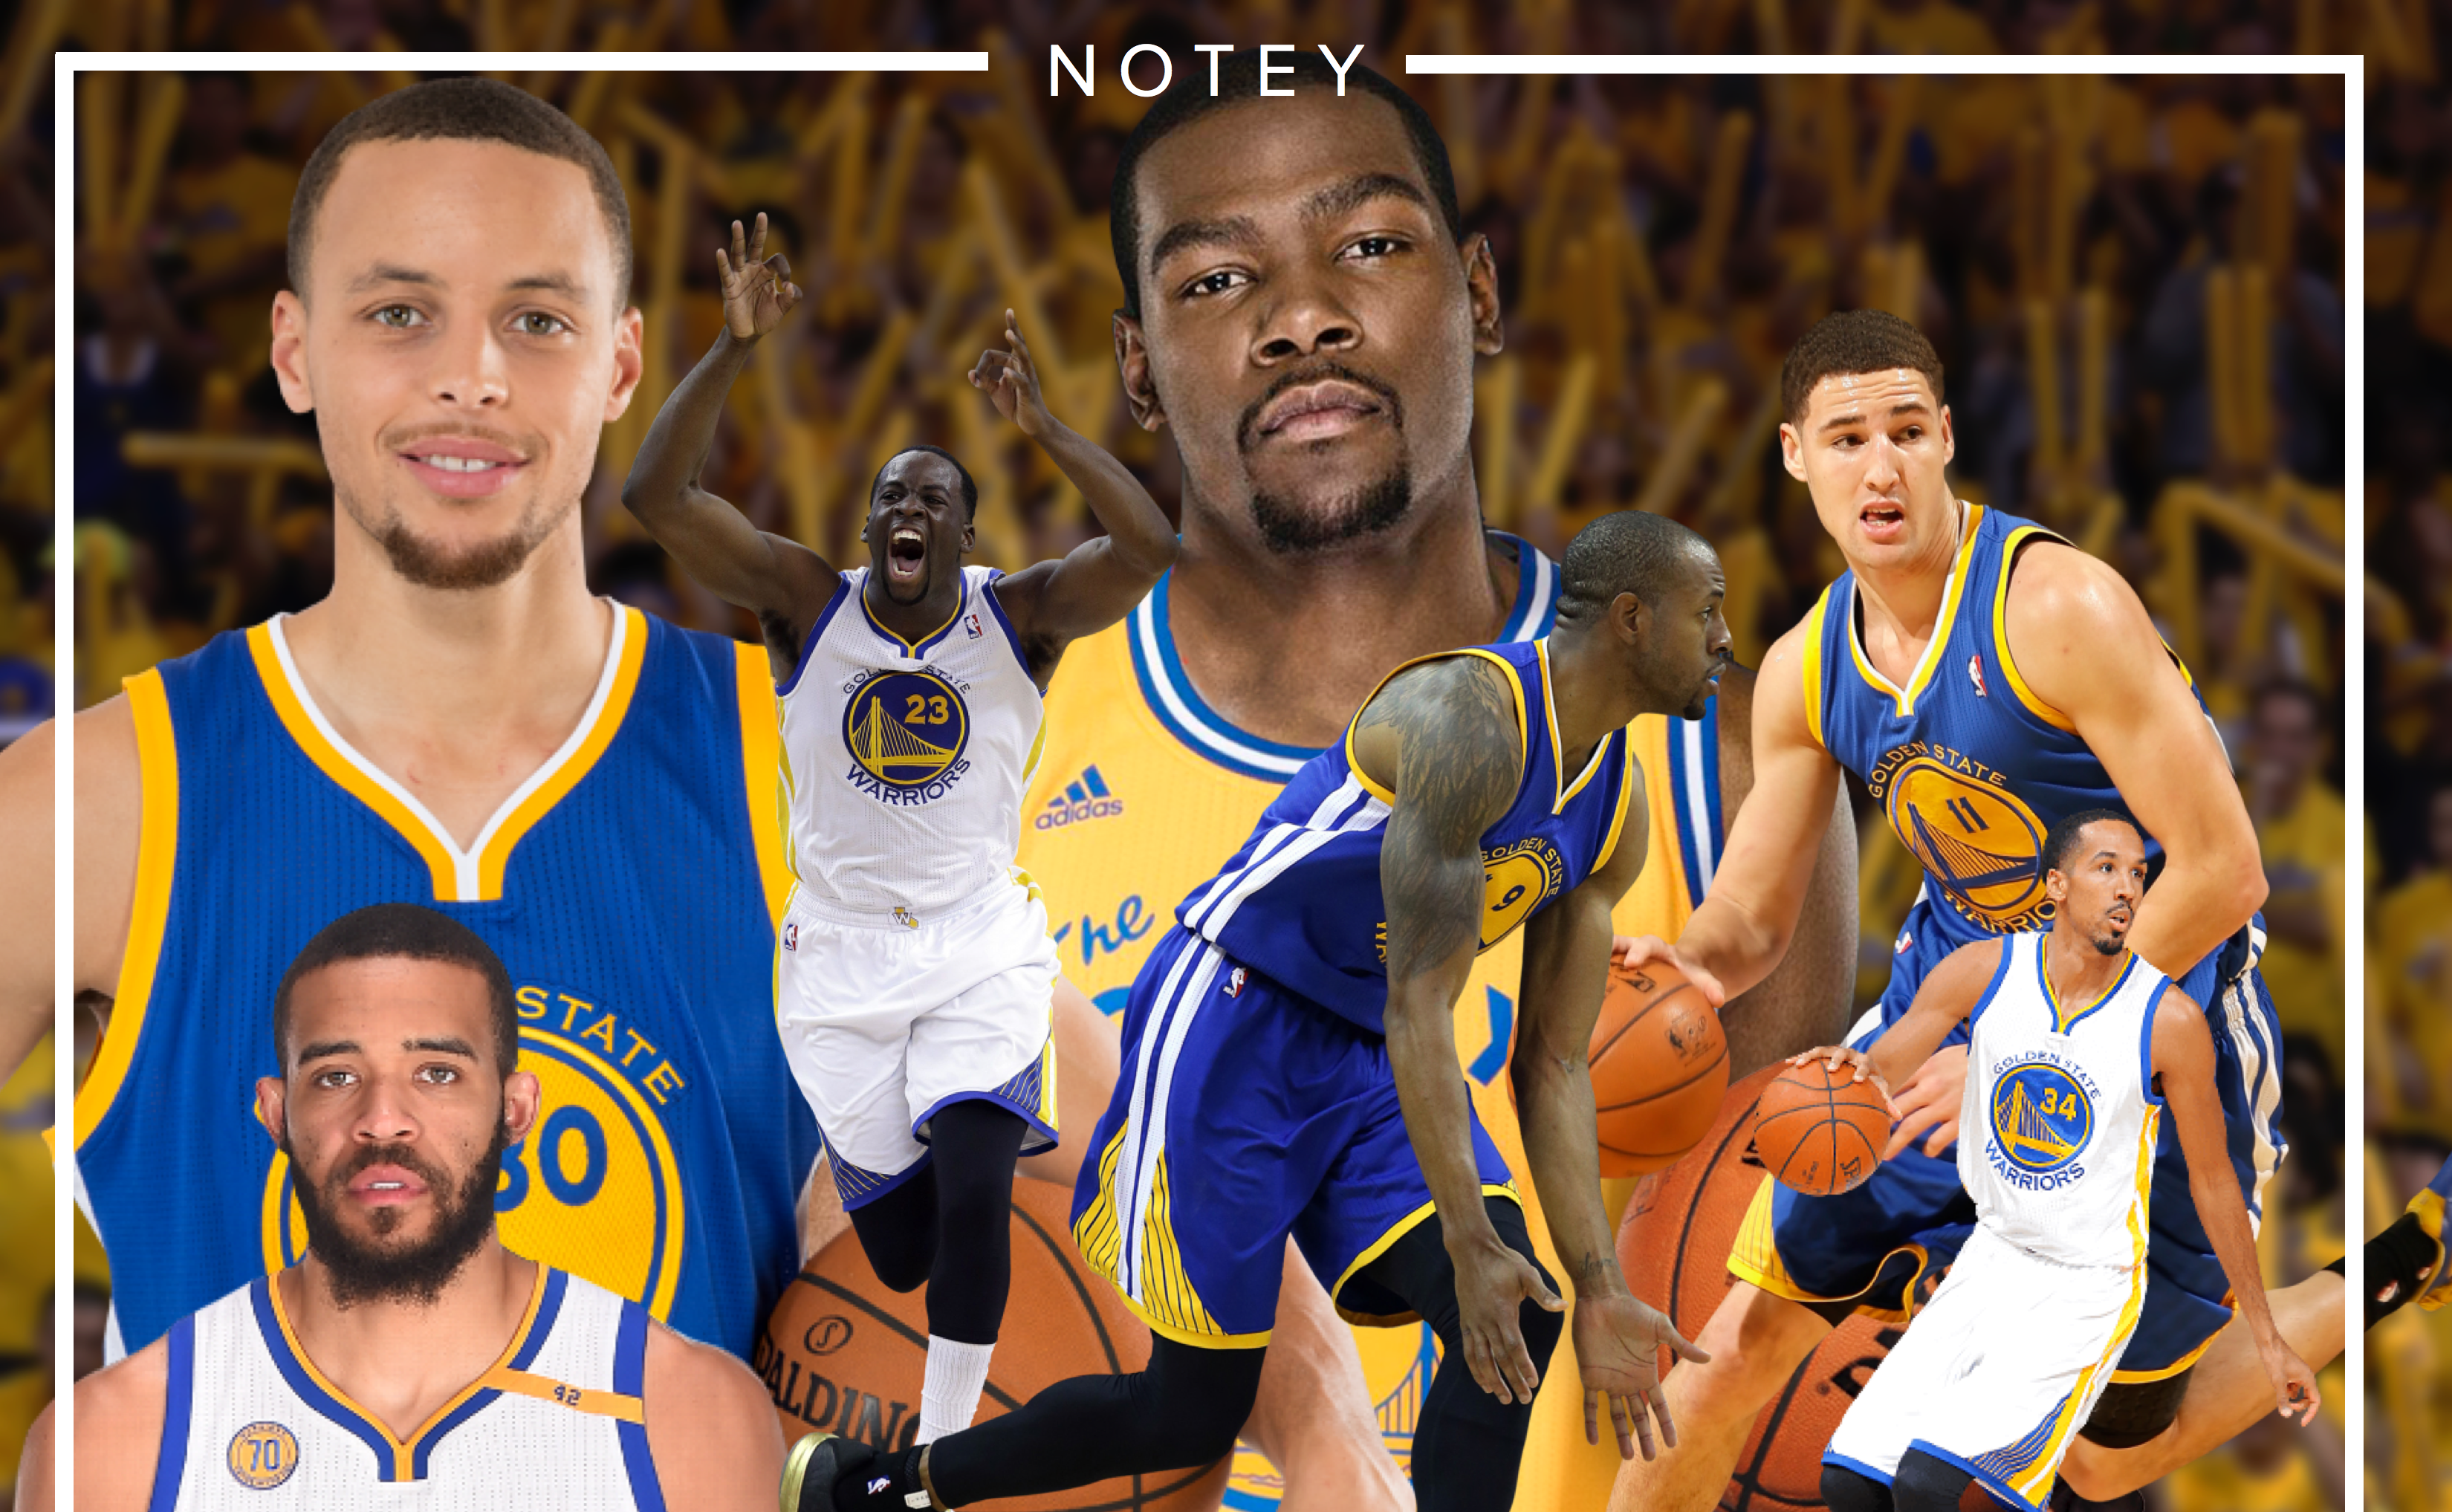 Which 2017 Golden State Warrior Are You? Take this quiz and find out today!